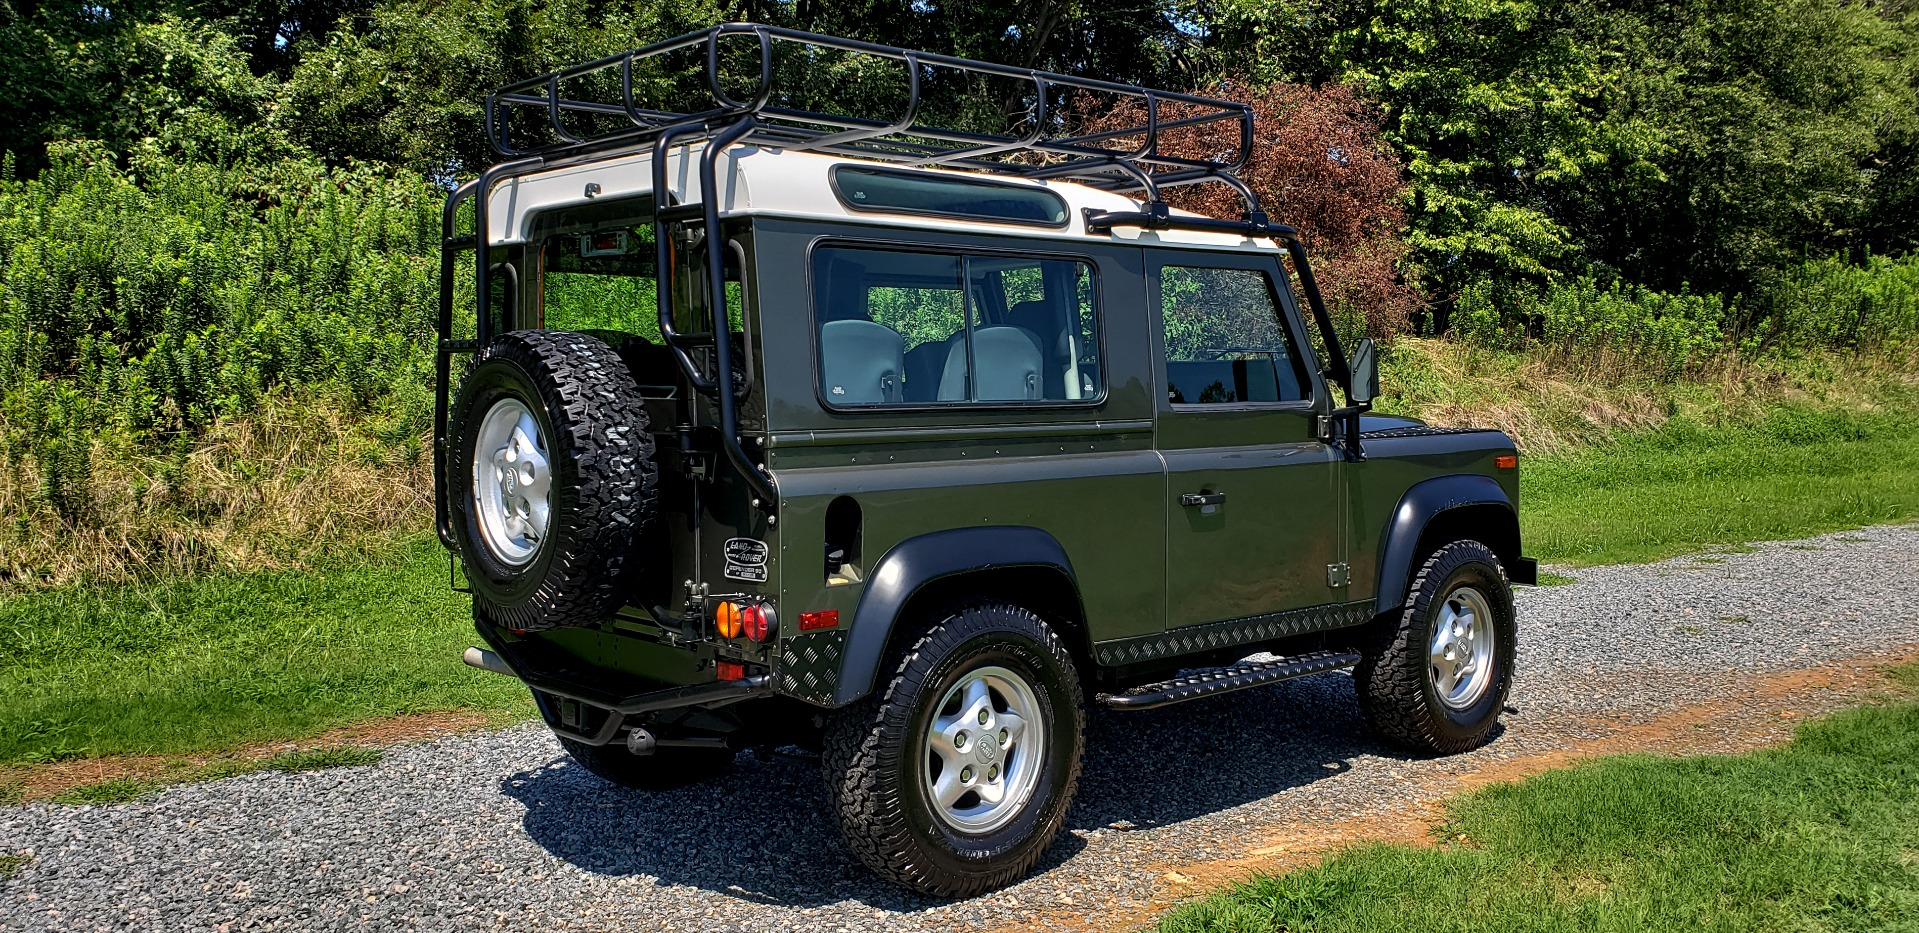 Used 1997 Land Rover DEFENDER 90 LIMITED EDITION / HARD-TOP / 4WD / FULLY RESTORED / LOW MILES for sale $119,000 at Formula Imports in Charlotte NC 28227 5